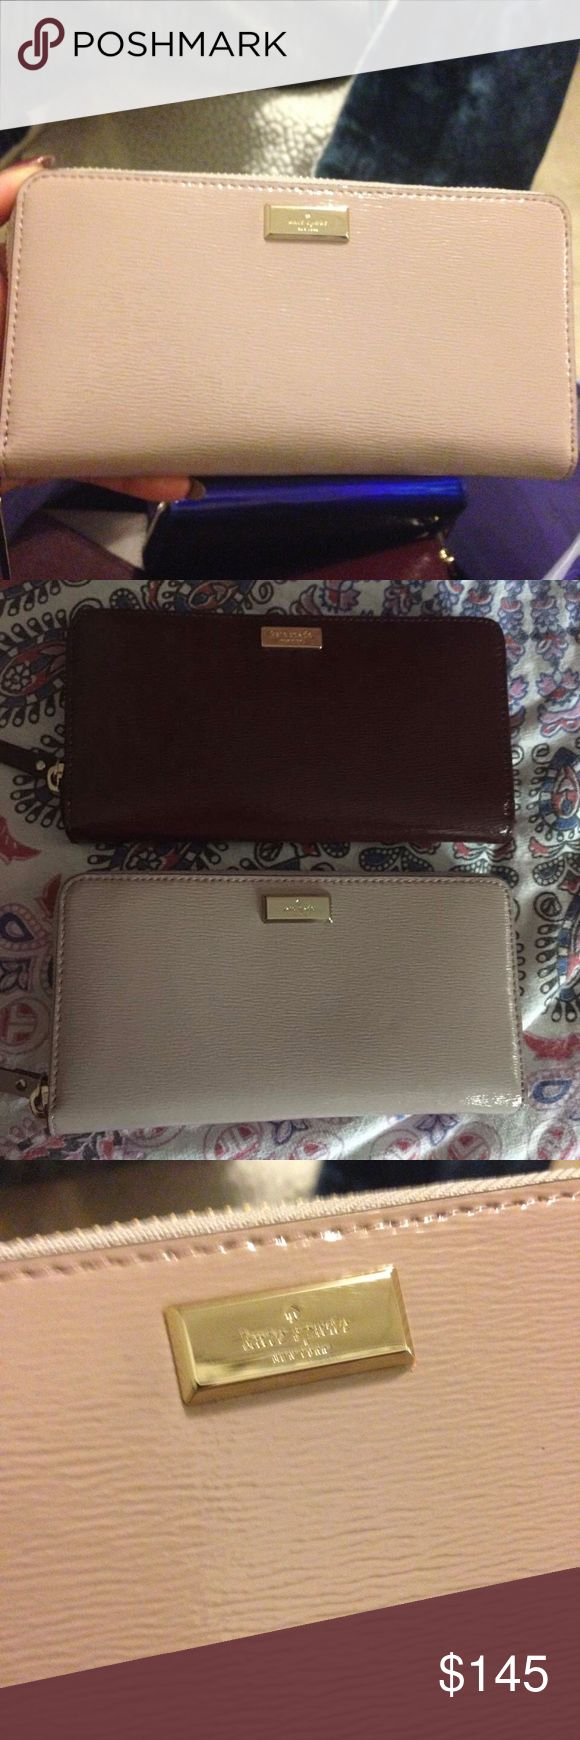 Kate Spade Bixby Place Neda Wallet in Mousse Frost Brand new! Smooth, shiny cross hatched leather textured. With original tags still attached! Makes a beautiful birthday or Mother's Day gift! Please make your offers through the offer button, I don't discuss prices in comments! Please keep in mind the 20% commission fees when making offers. kate spade Bags Wallets